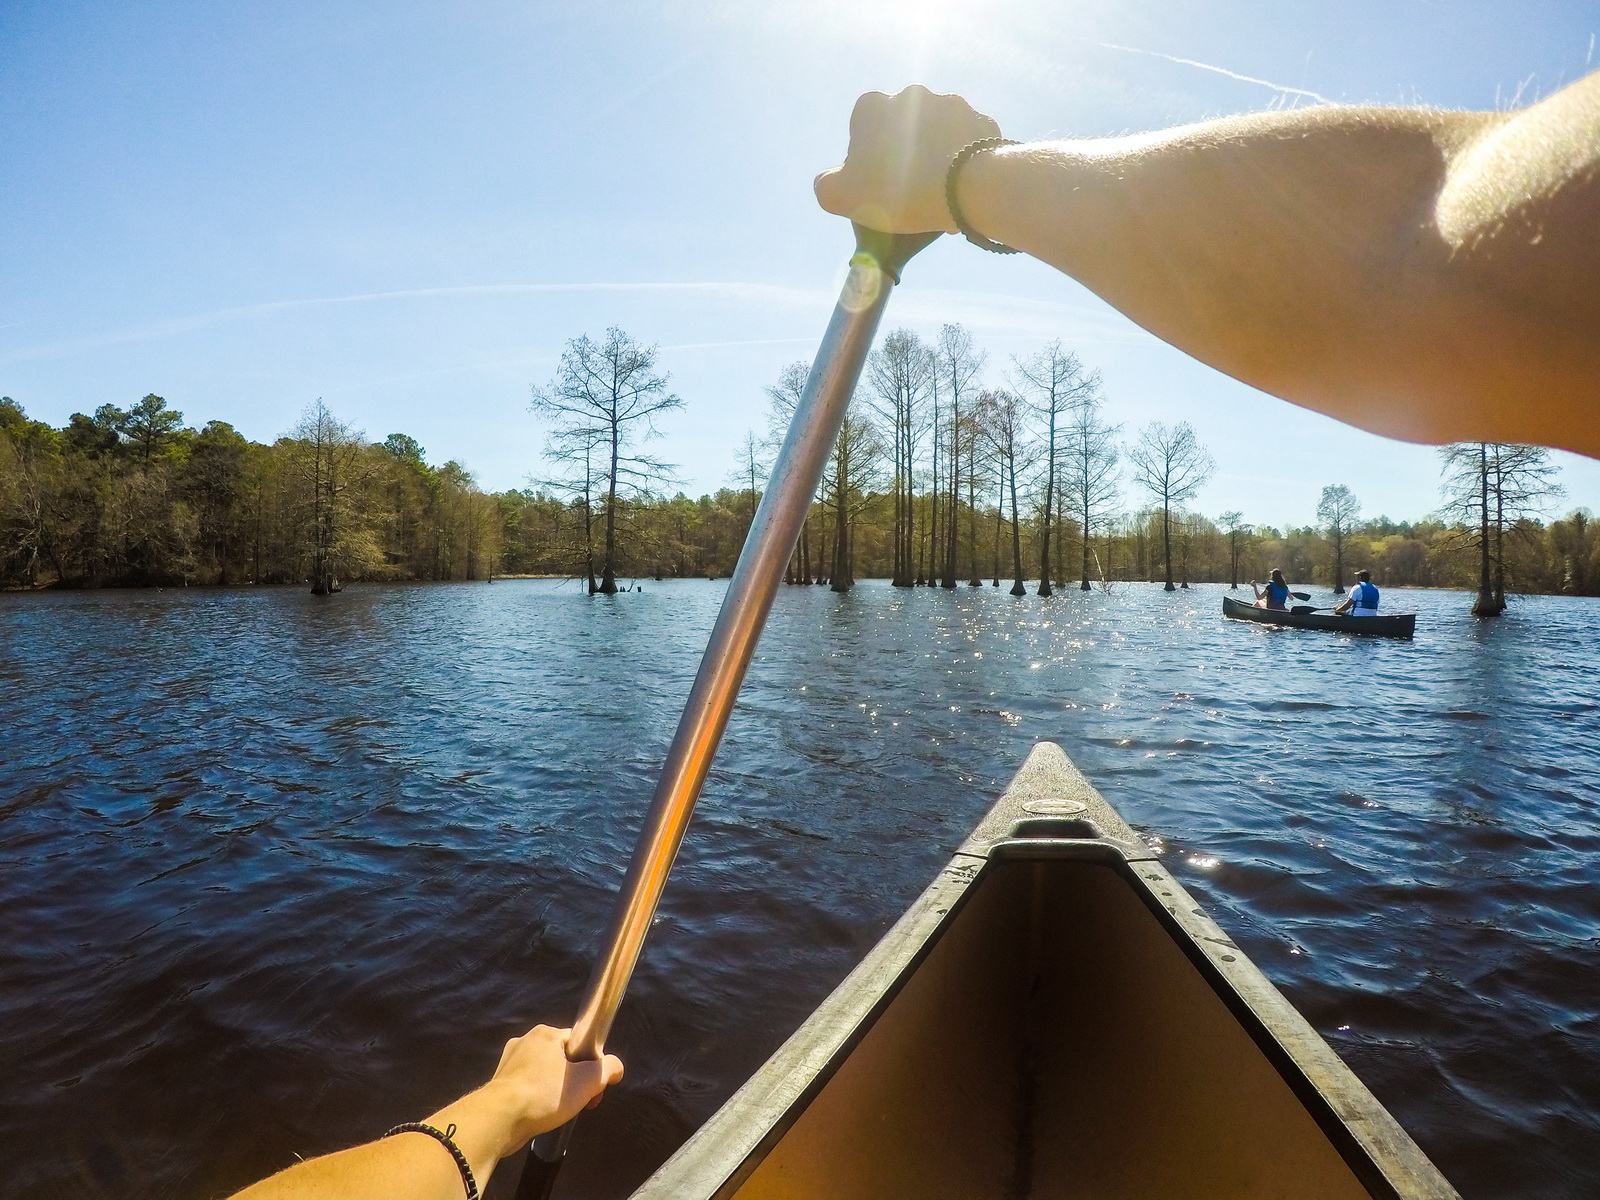 Canoing and kayaking are popular at Trap Pond State Park